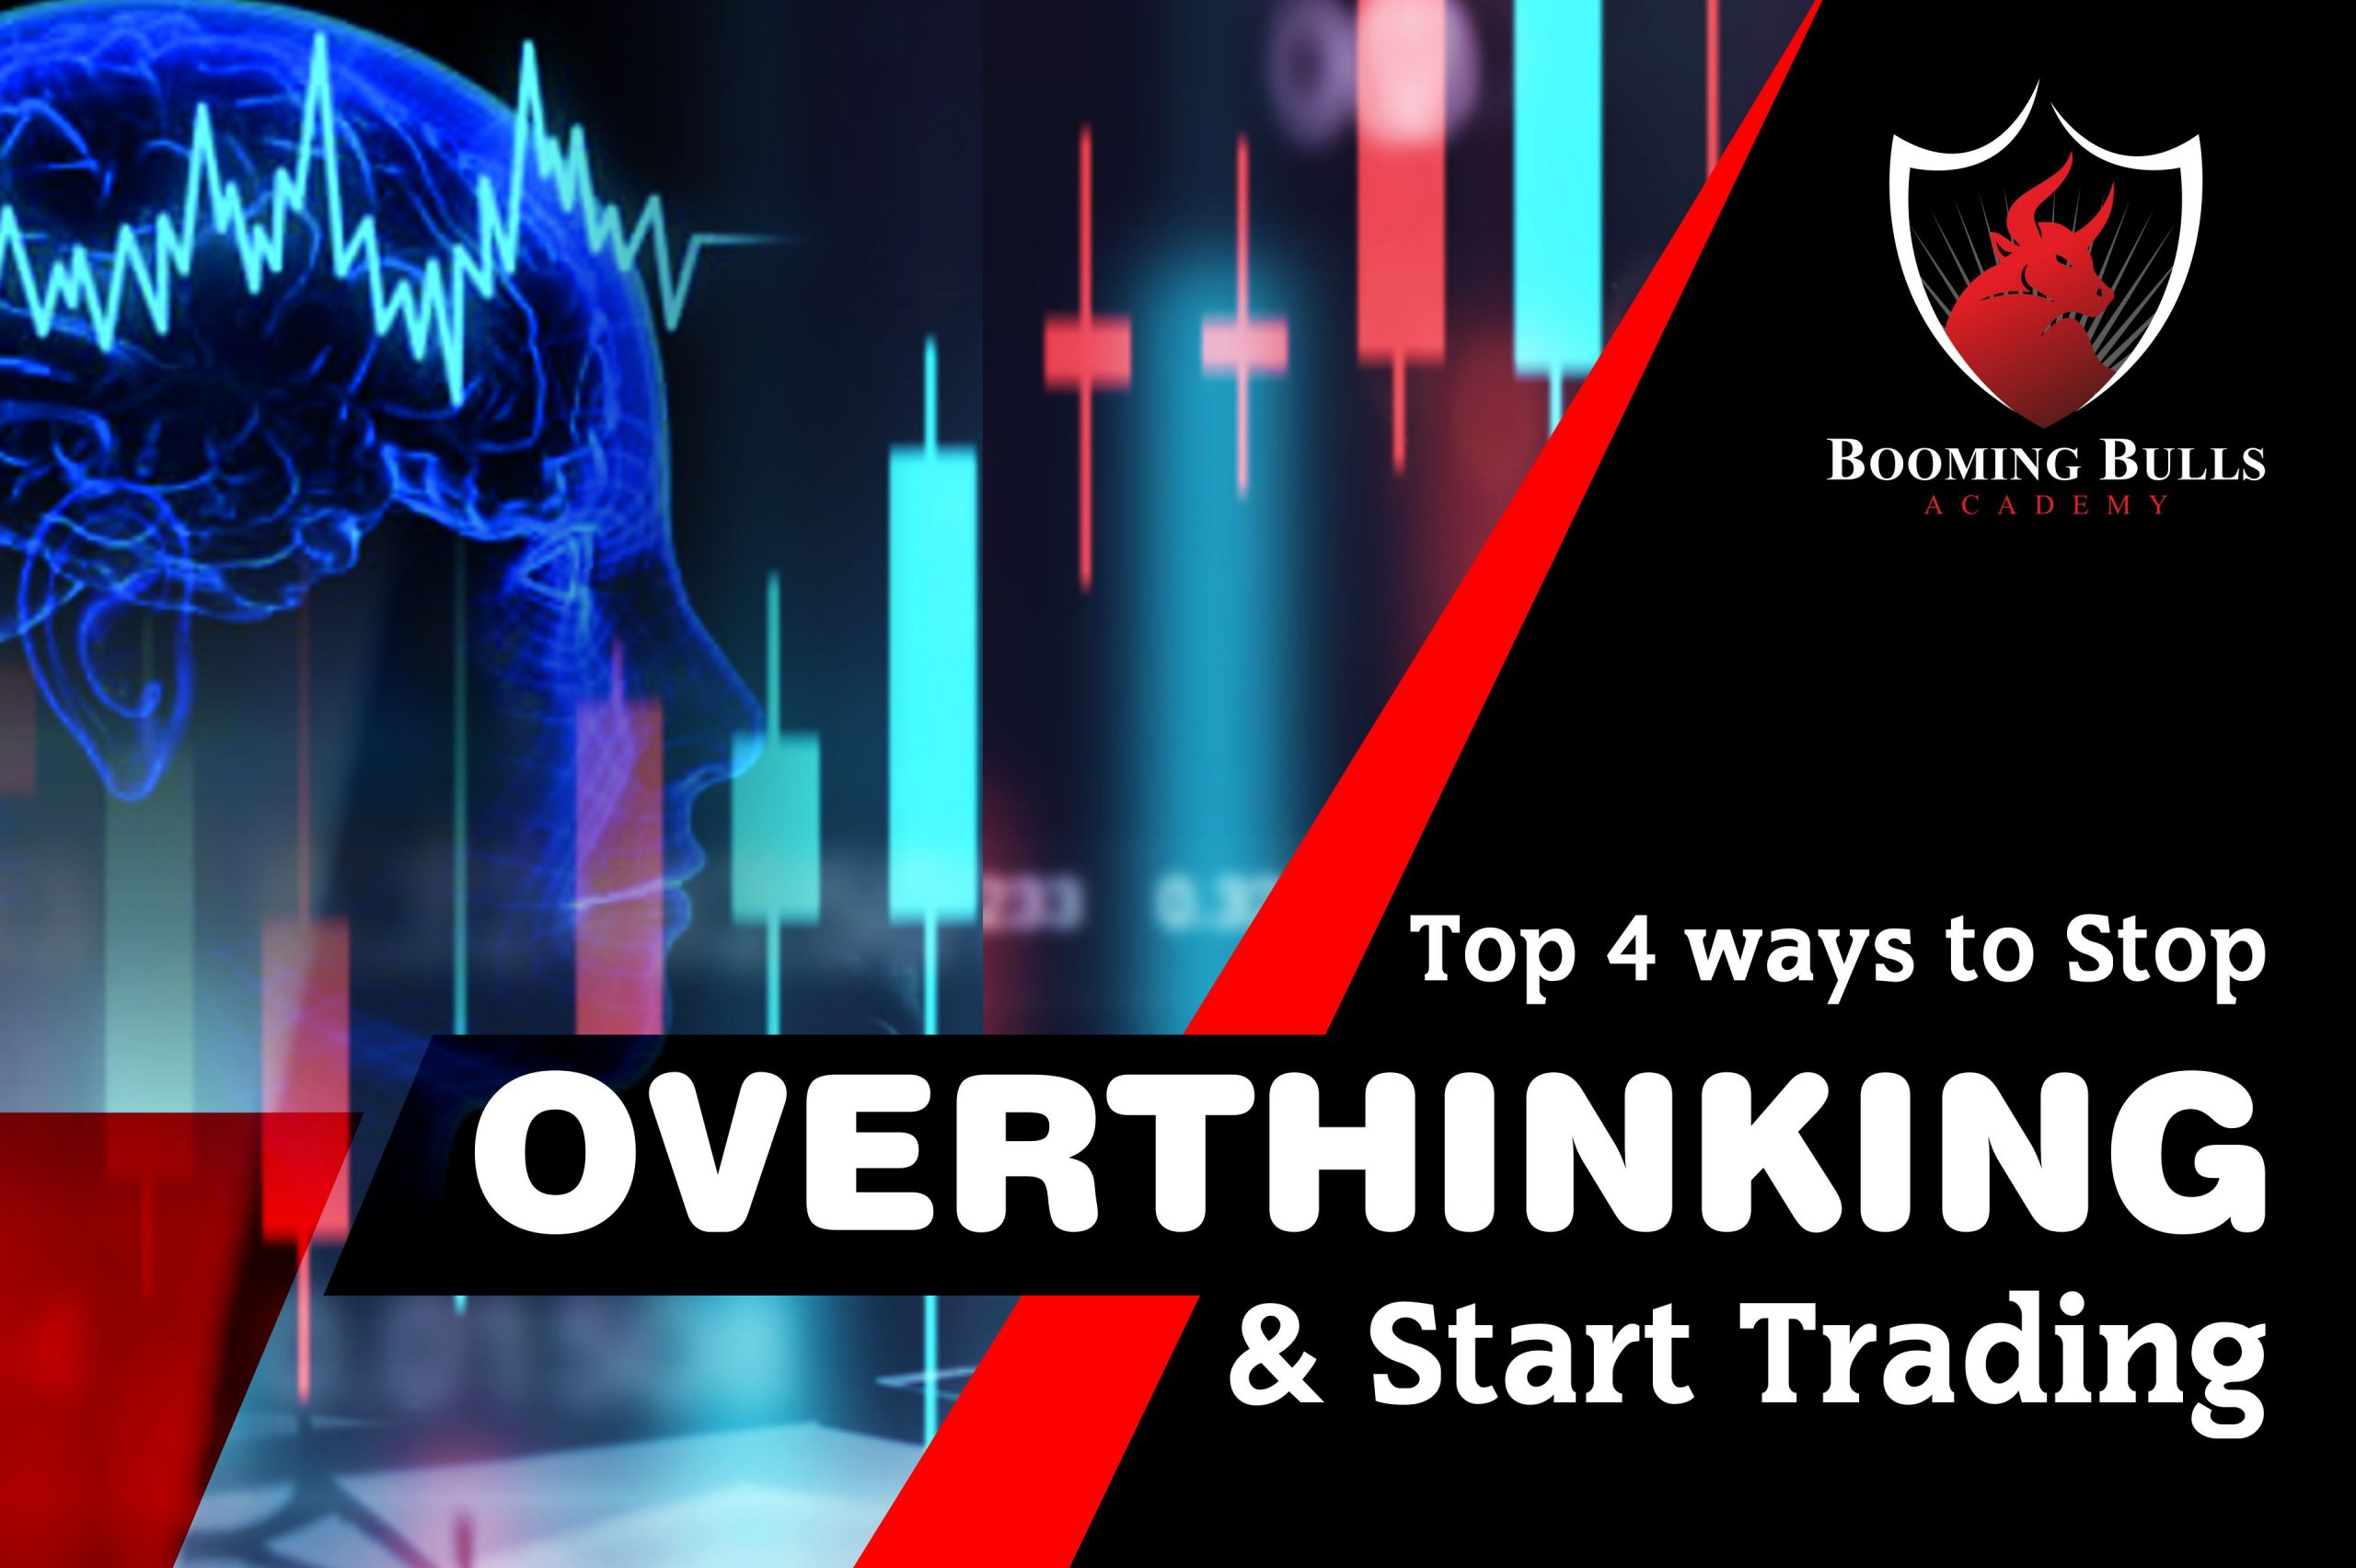 Top 4 Ways to Stop Overthinking and Start Trading